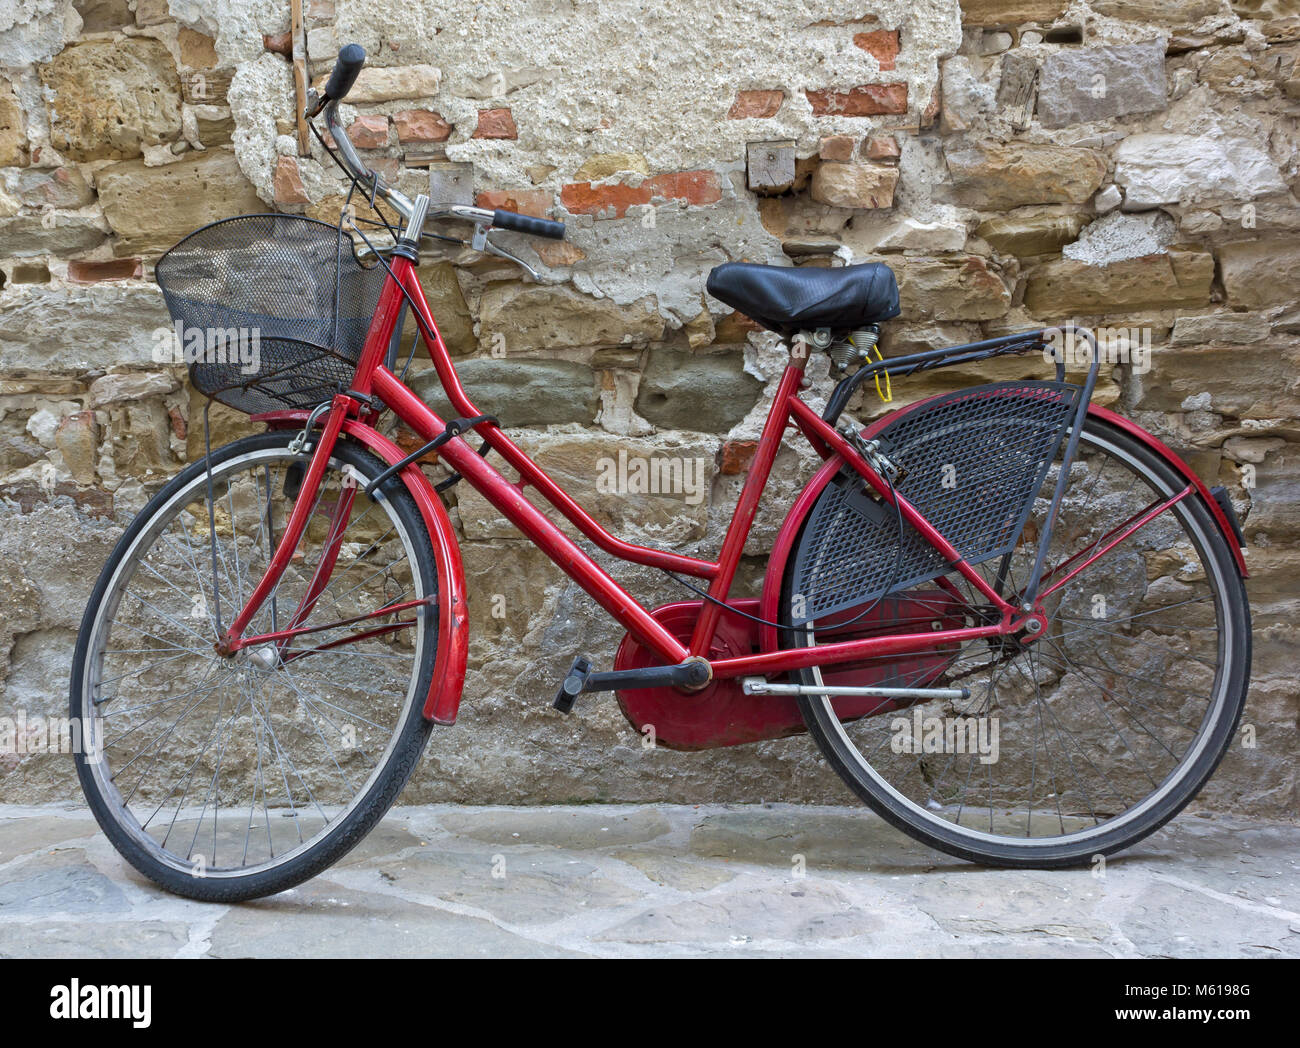 Red women's bicycle against a brick wall - Stock Image